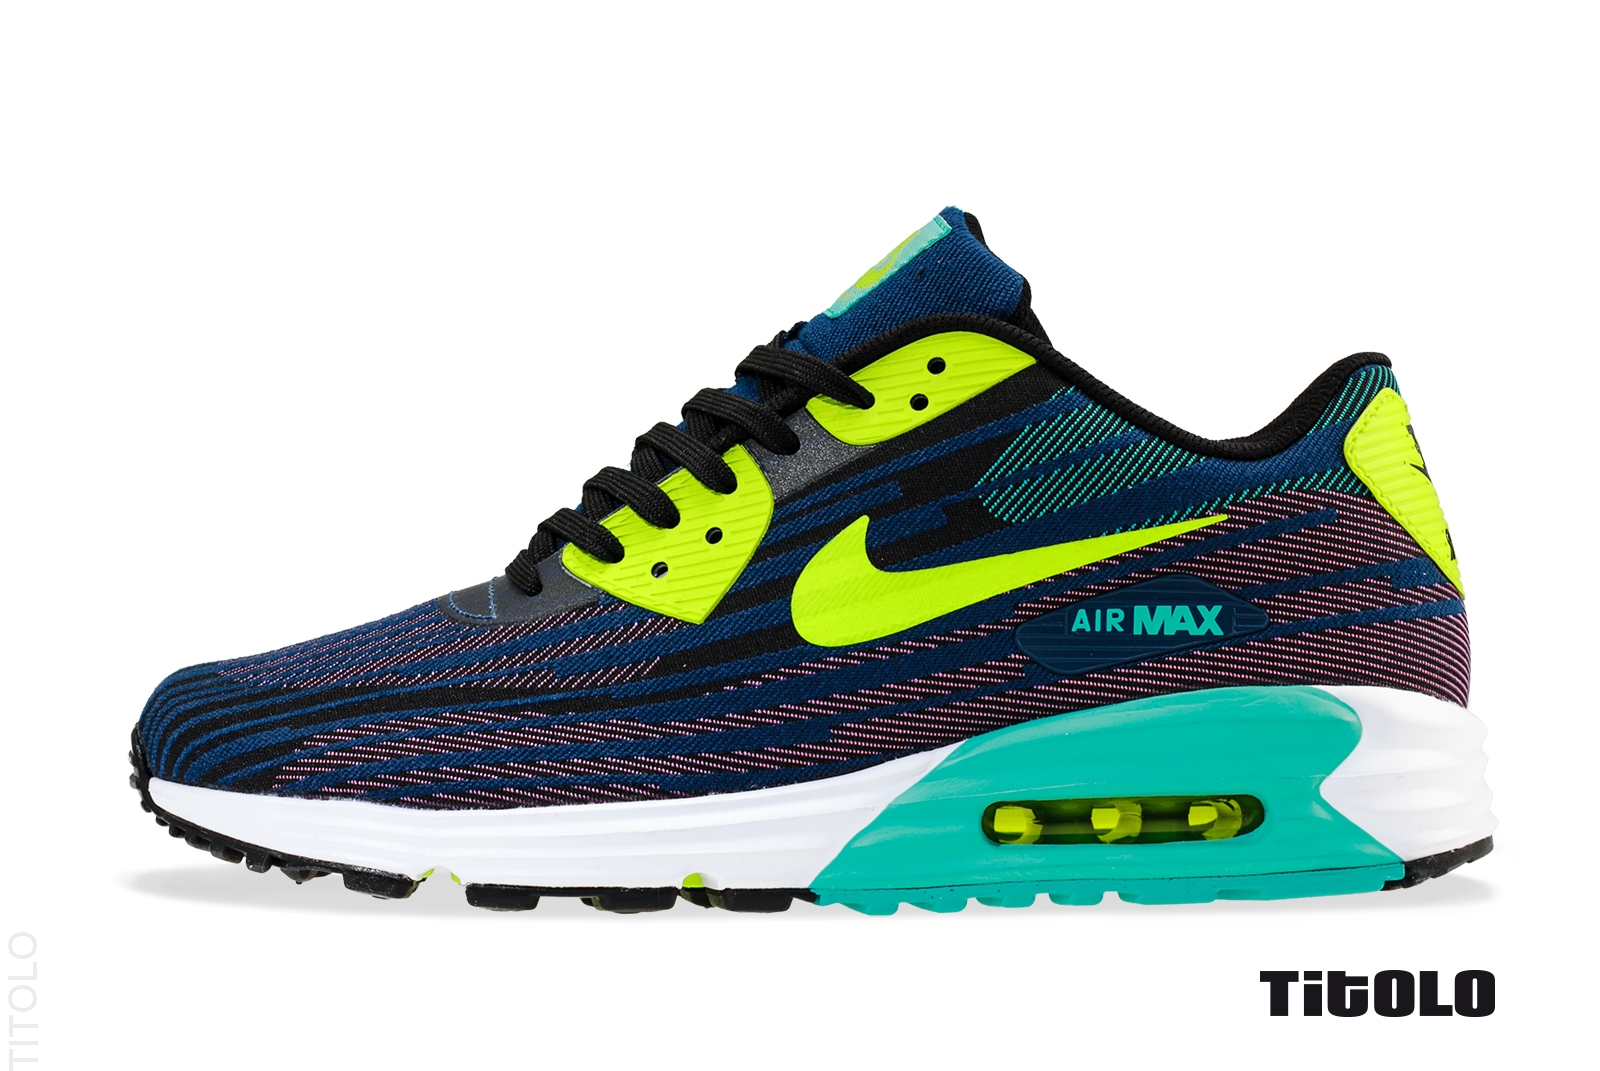 nike air max lunar 90 jacquard brave blue air 23 air. Black Bedroom Furniture Sets. Home Design Ideas